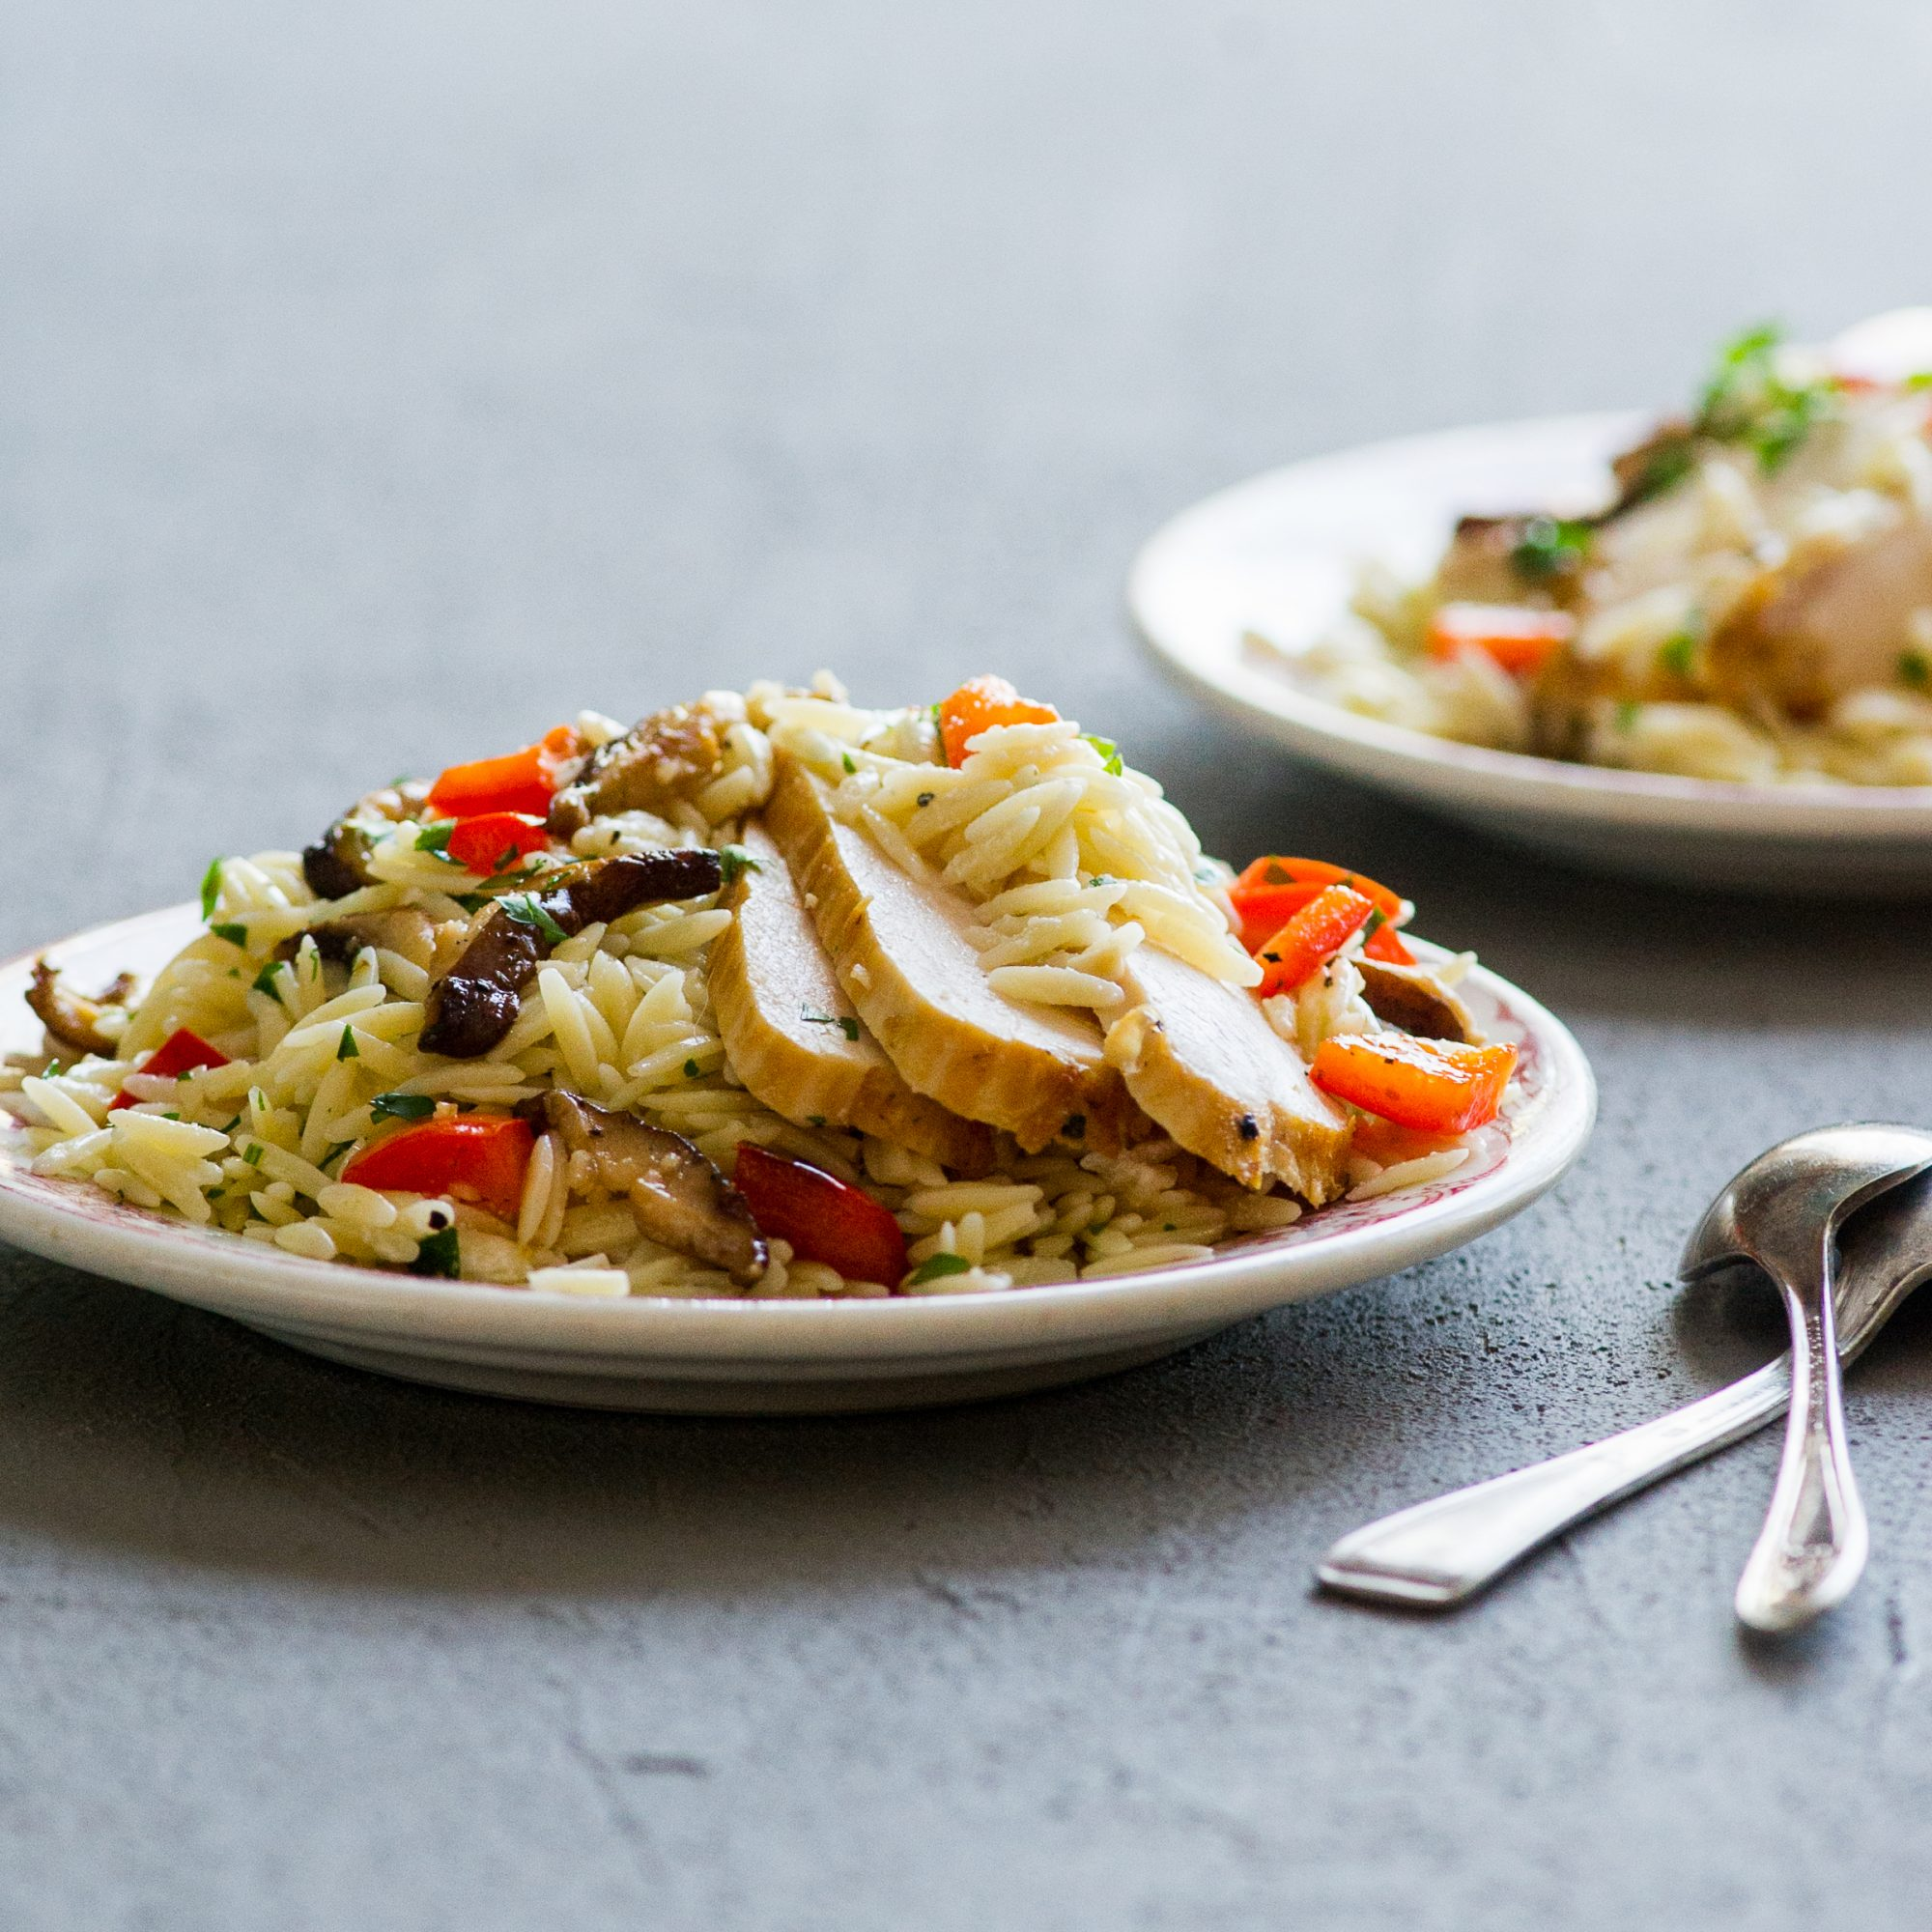 Orzo with Chicken, Red Pepper, and Shiitakes